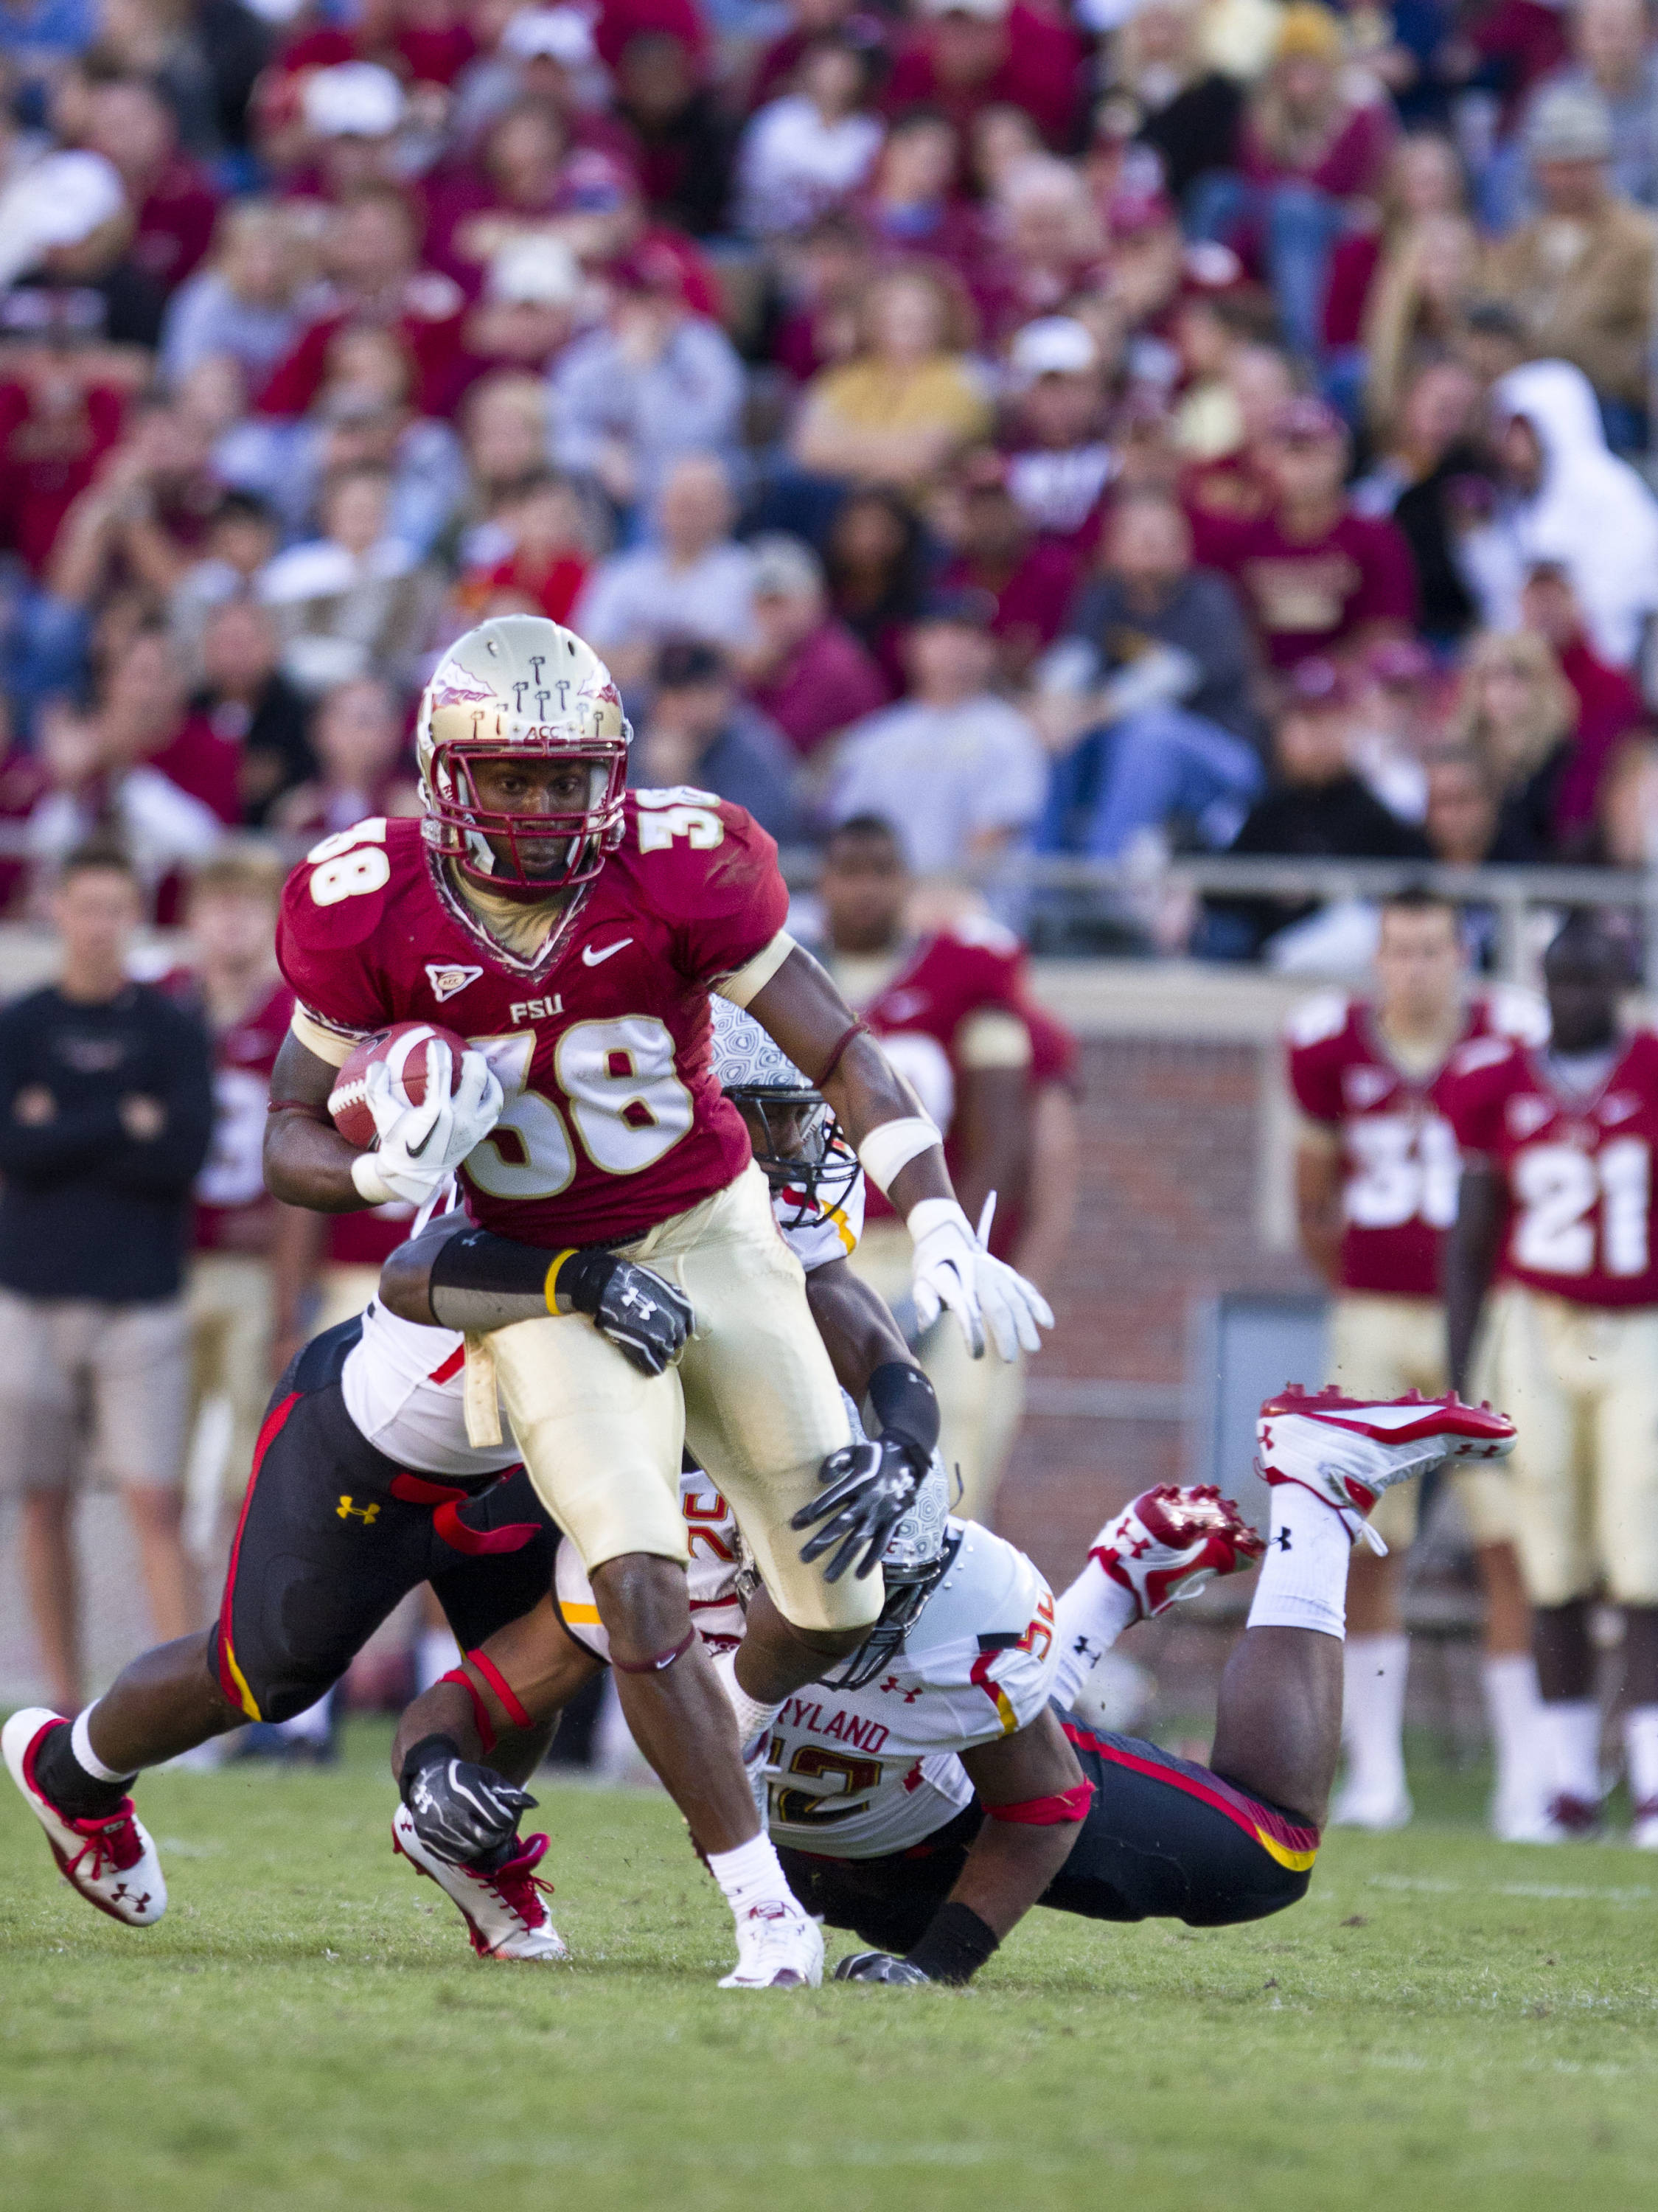 Jermaine Thomas (38) carries the ball down field during the football game against Maryland in Tallahassee, Florida on October 22, 2011.